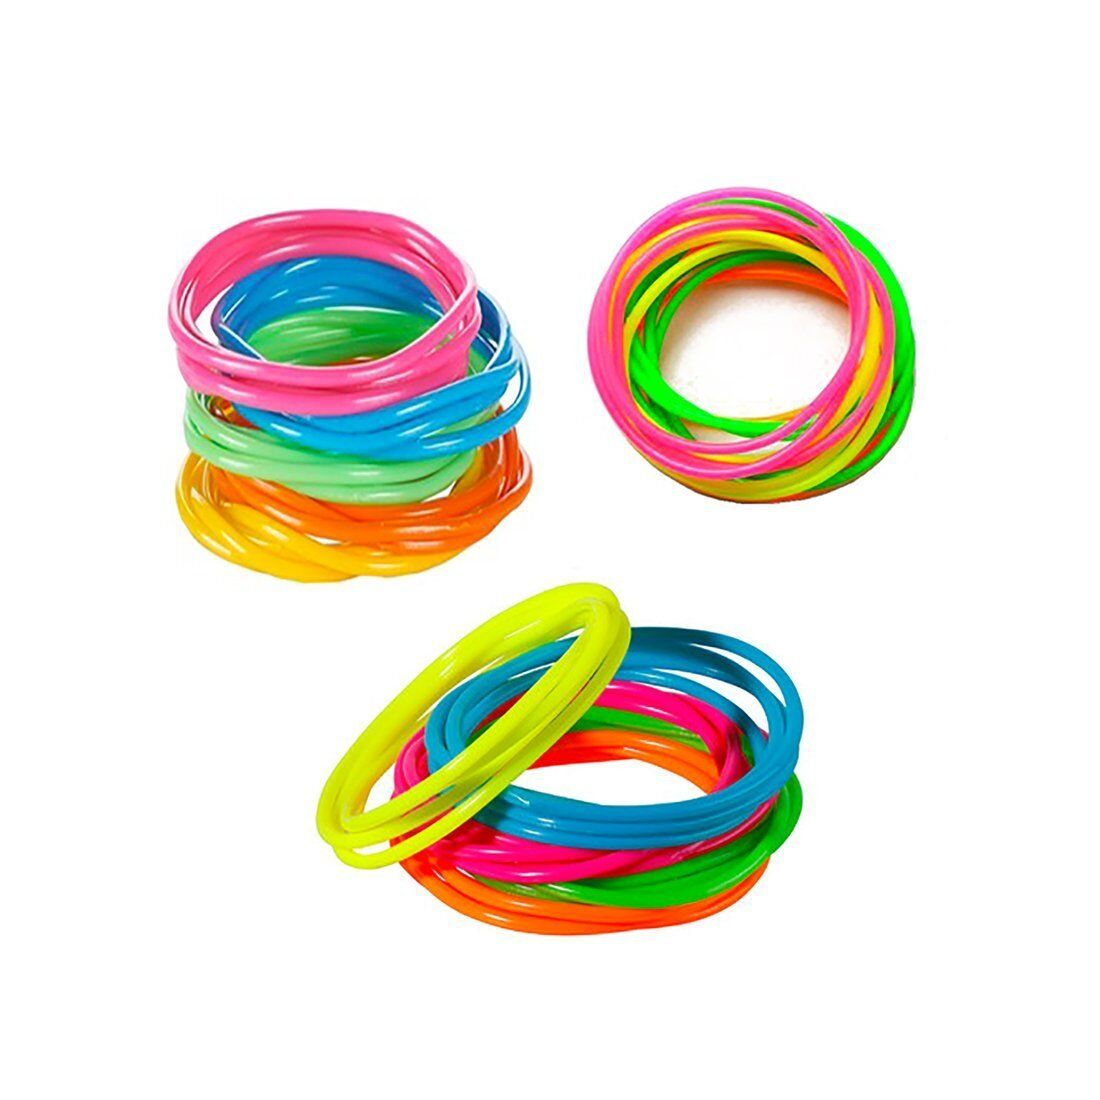 Adorox Neon Jelly Bracelets Rainbow Colors Party Favors Birt